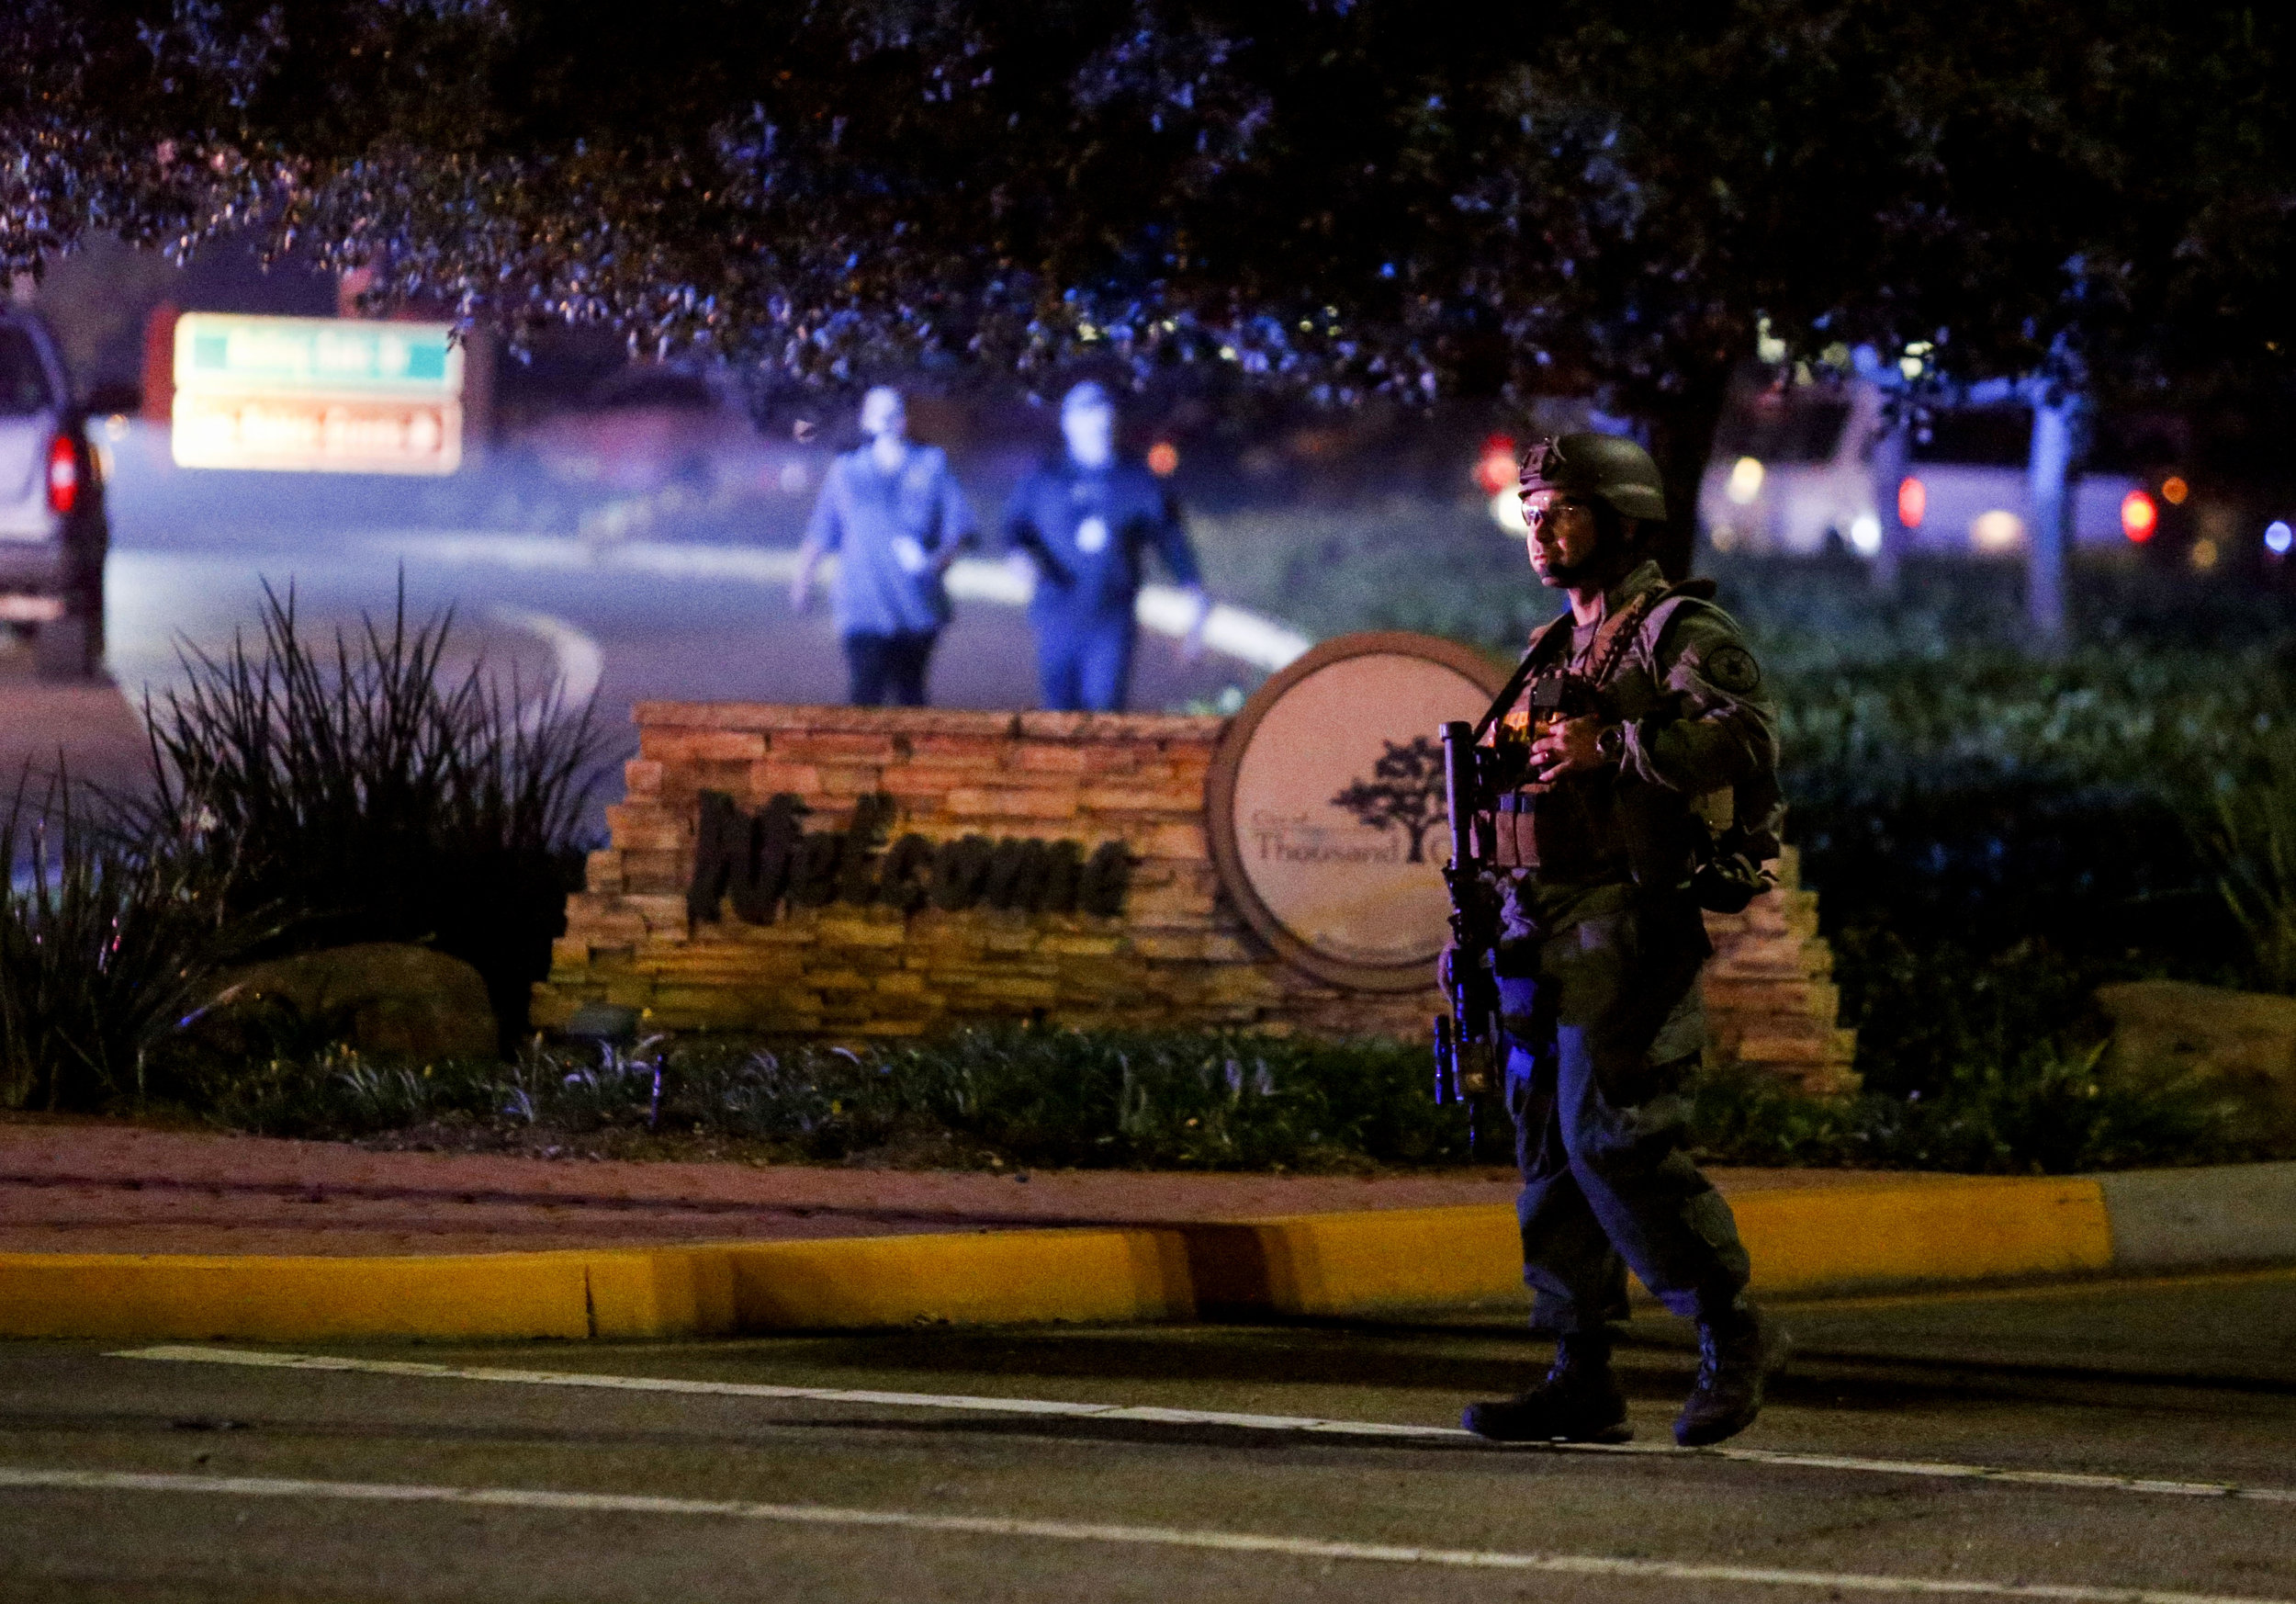 A police officer secures the road leading to the Borderline Bar and Grill where a gunman injured 11 people in Thousand Oaks, California, the United State, November 8, 2018.